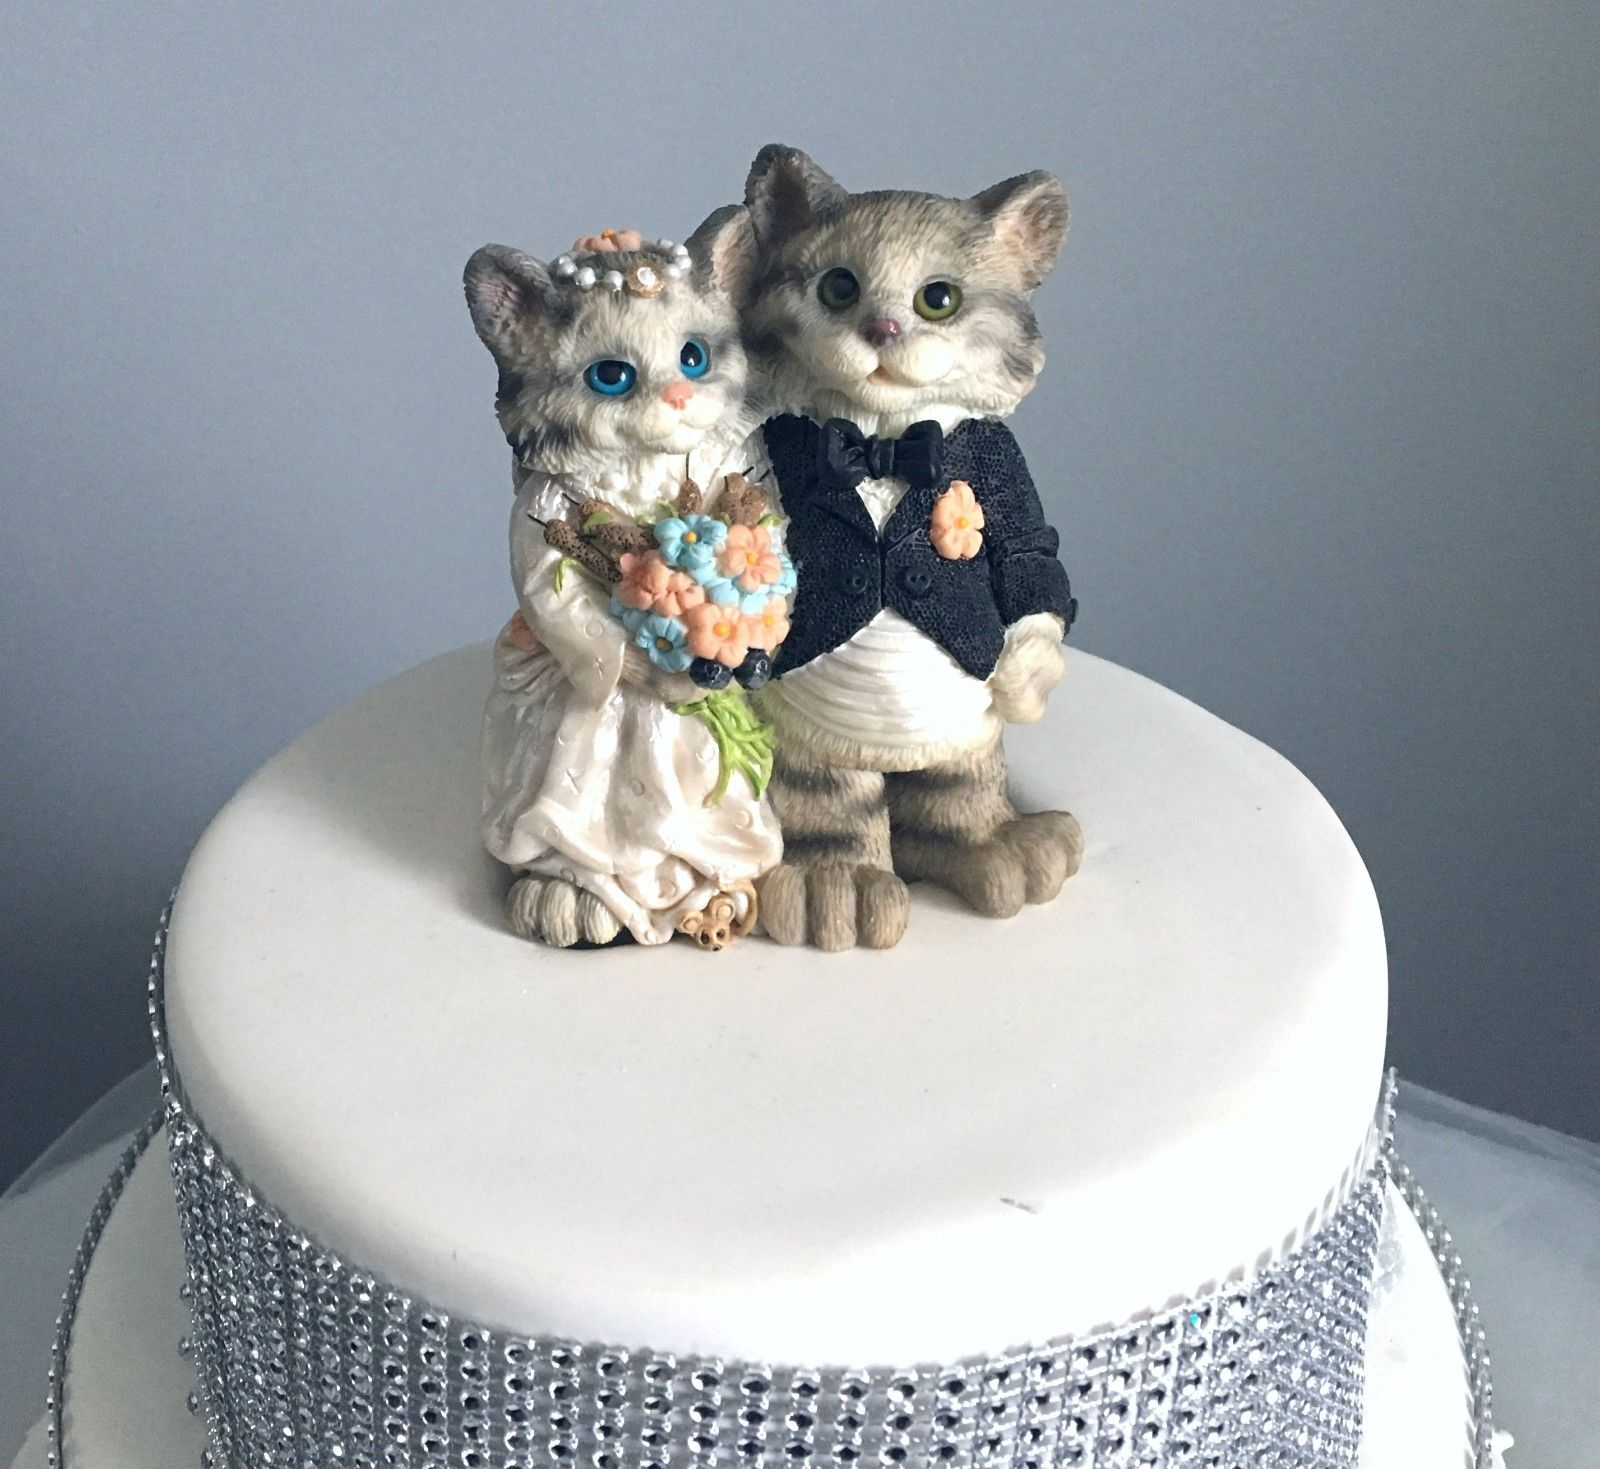 Cat Wedding Cake Toppers - Shop Cat Wedding Cake Toppers Online